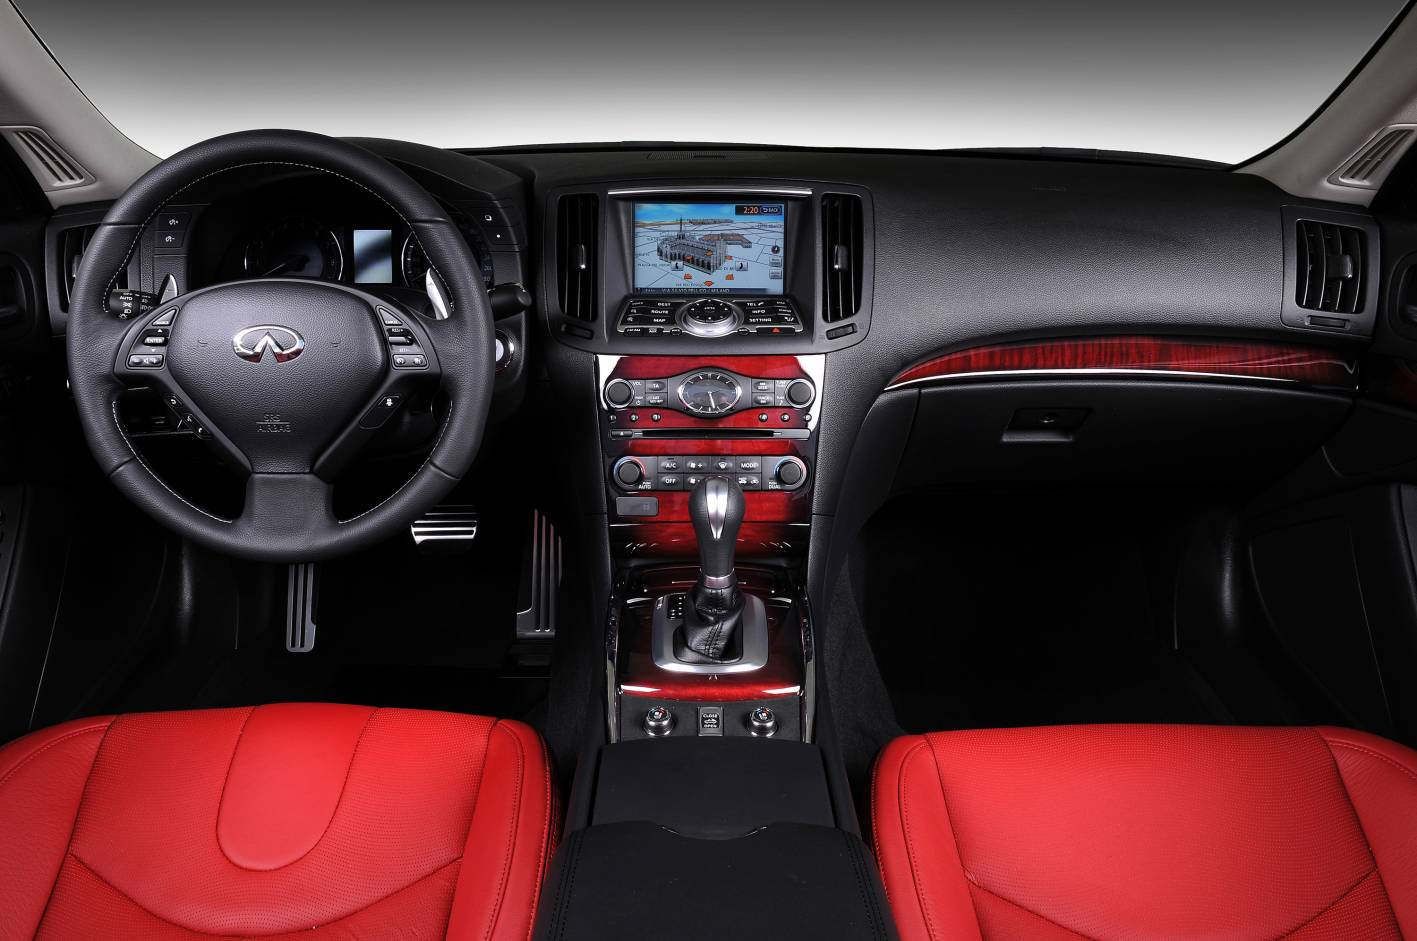 Infiniti cars news g37 pricing specifications - Infiniti g37 red interior for sale ...